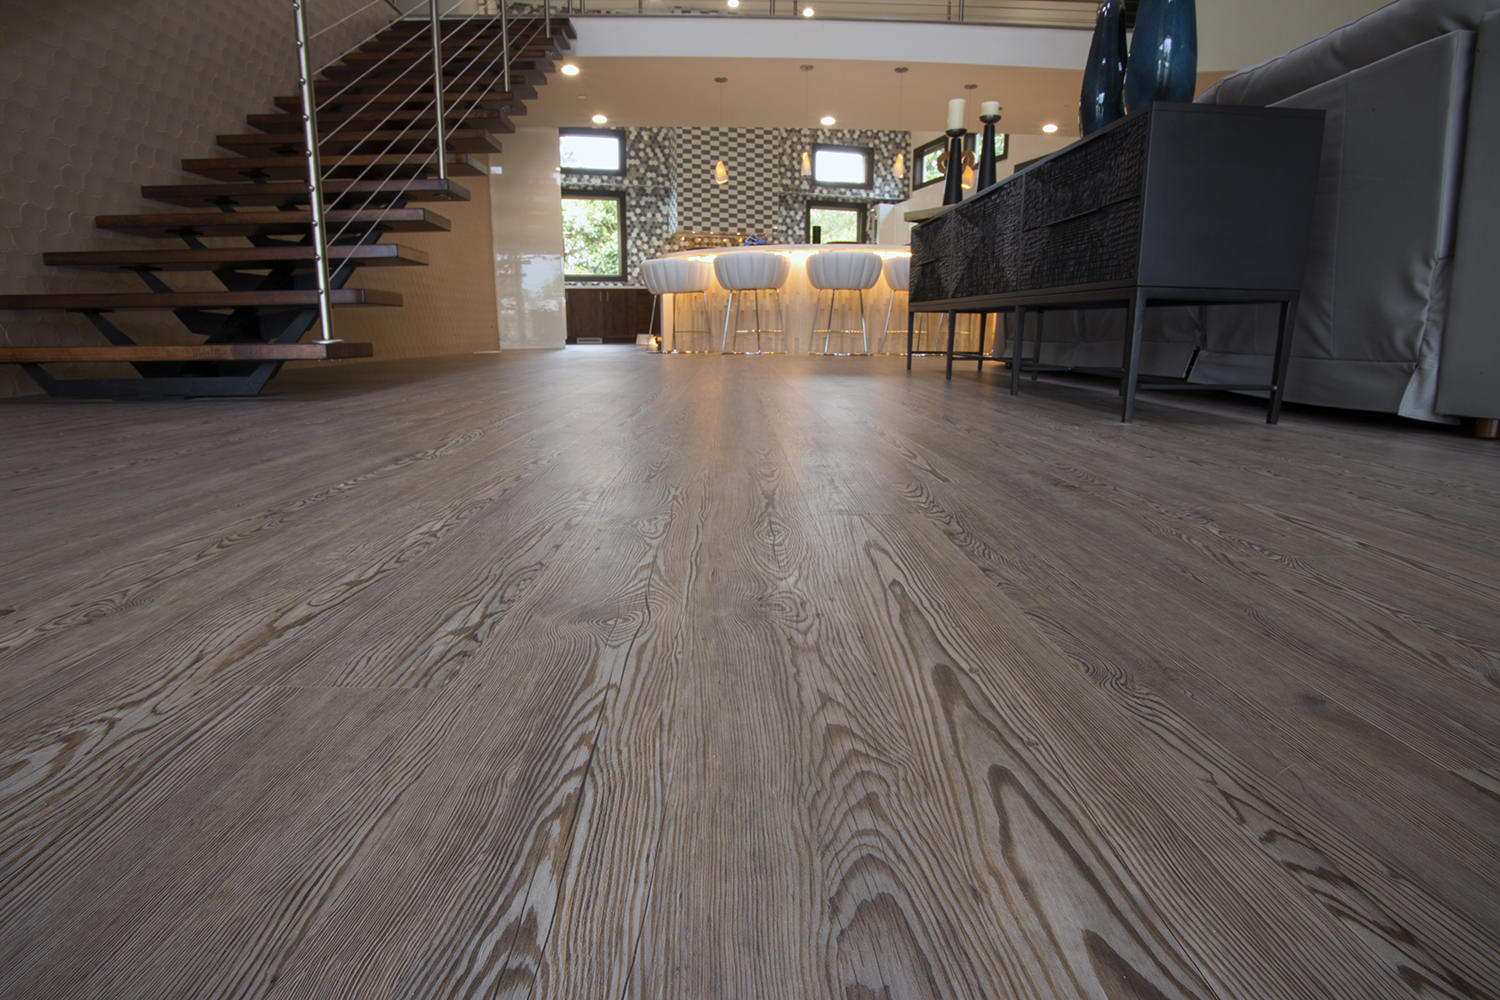 wood-floors-decor-interior-design-los-altos-california-ktj-design-co-1.jpg